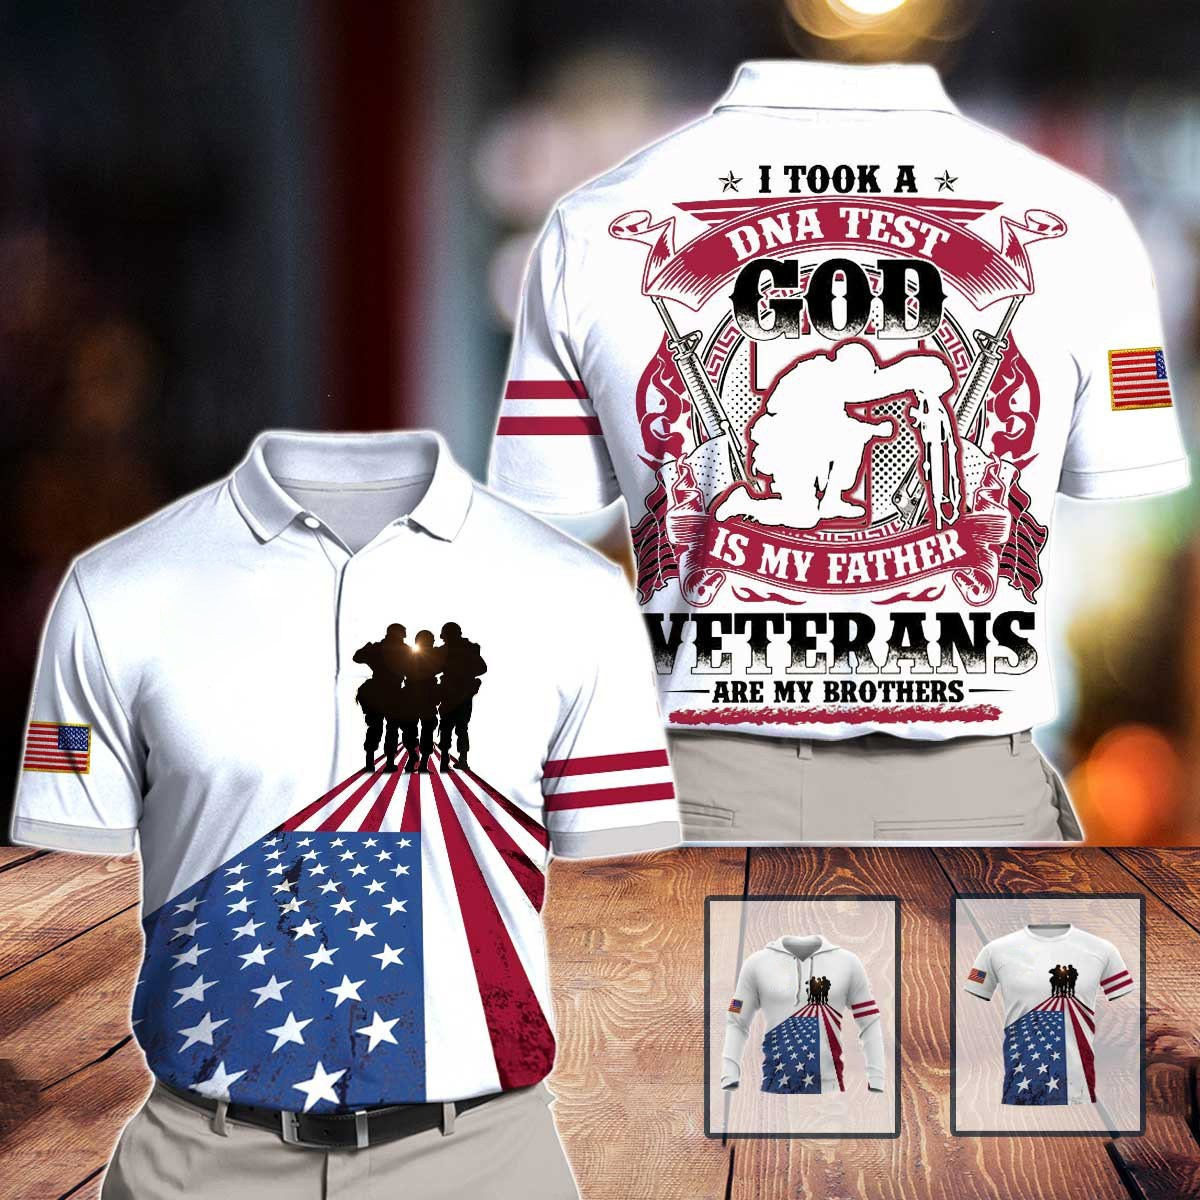 I took a dna test god is my father veterans are my brothers all over print polo shirt